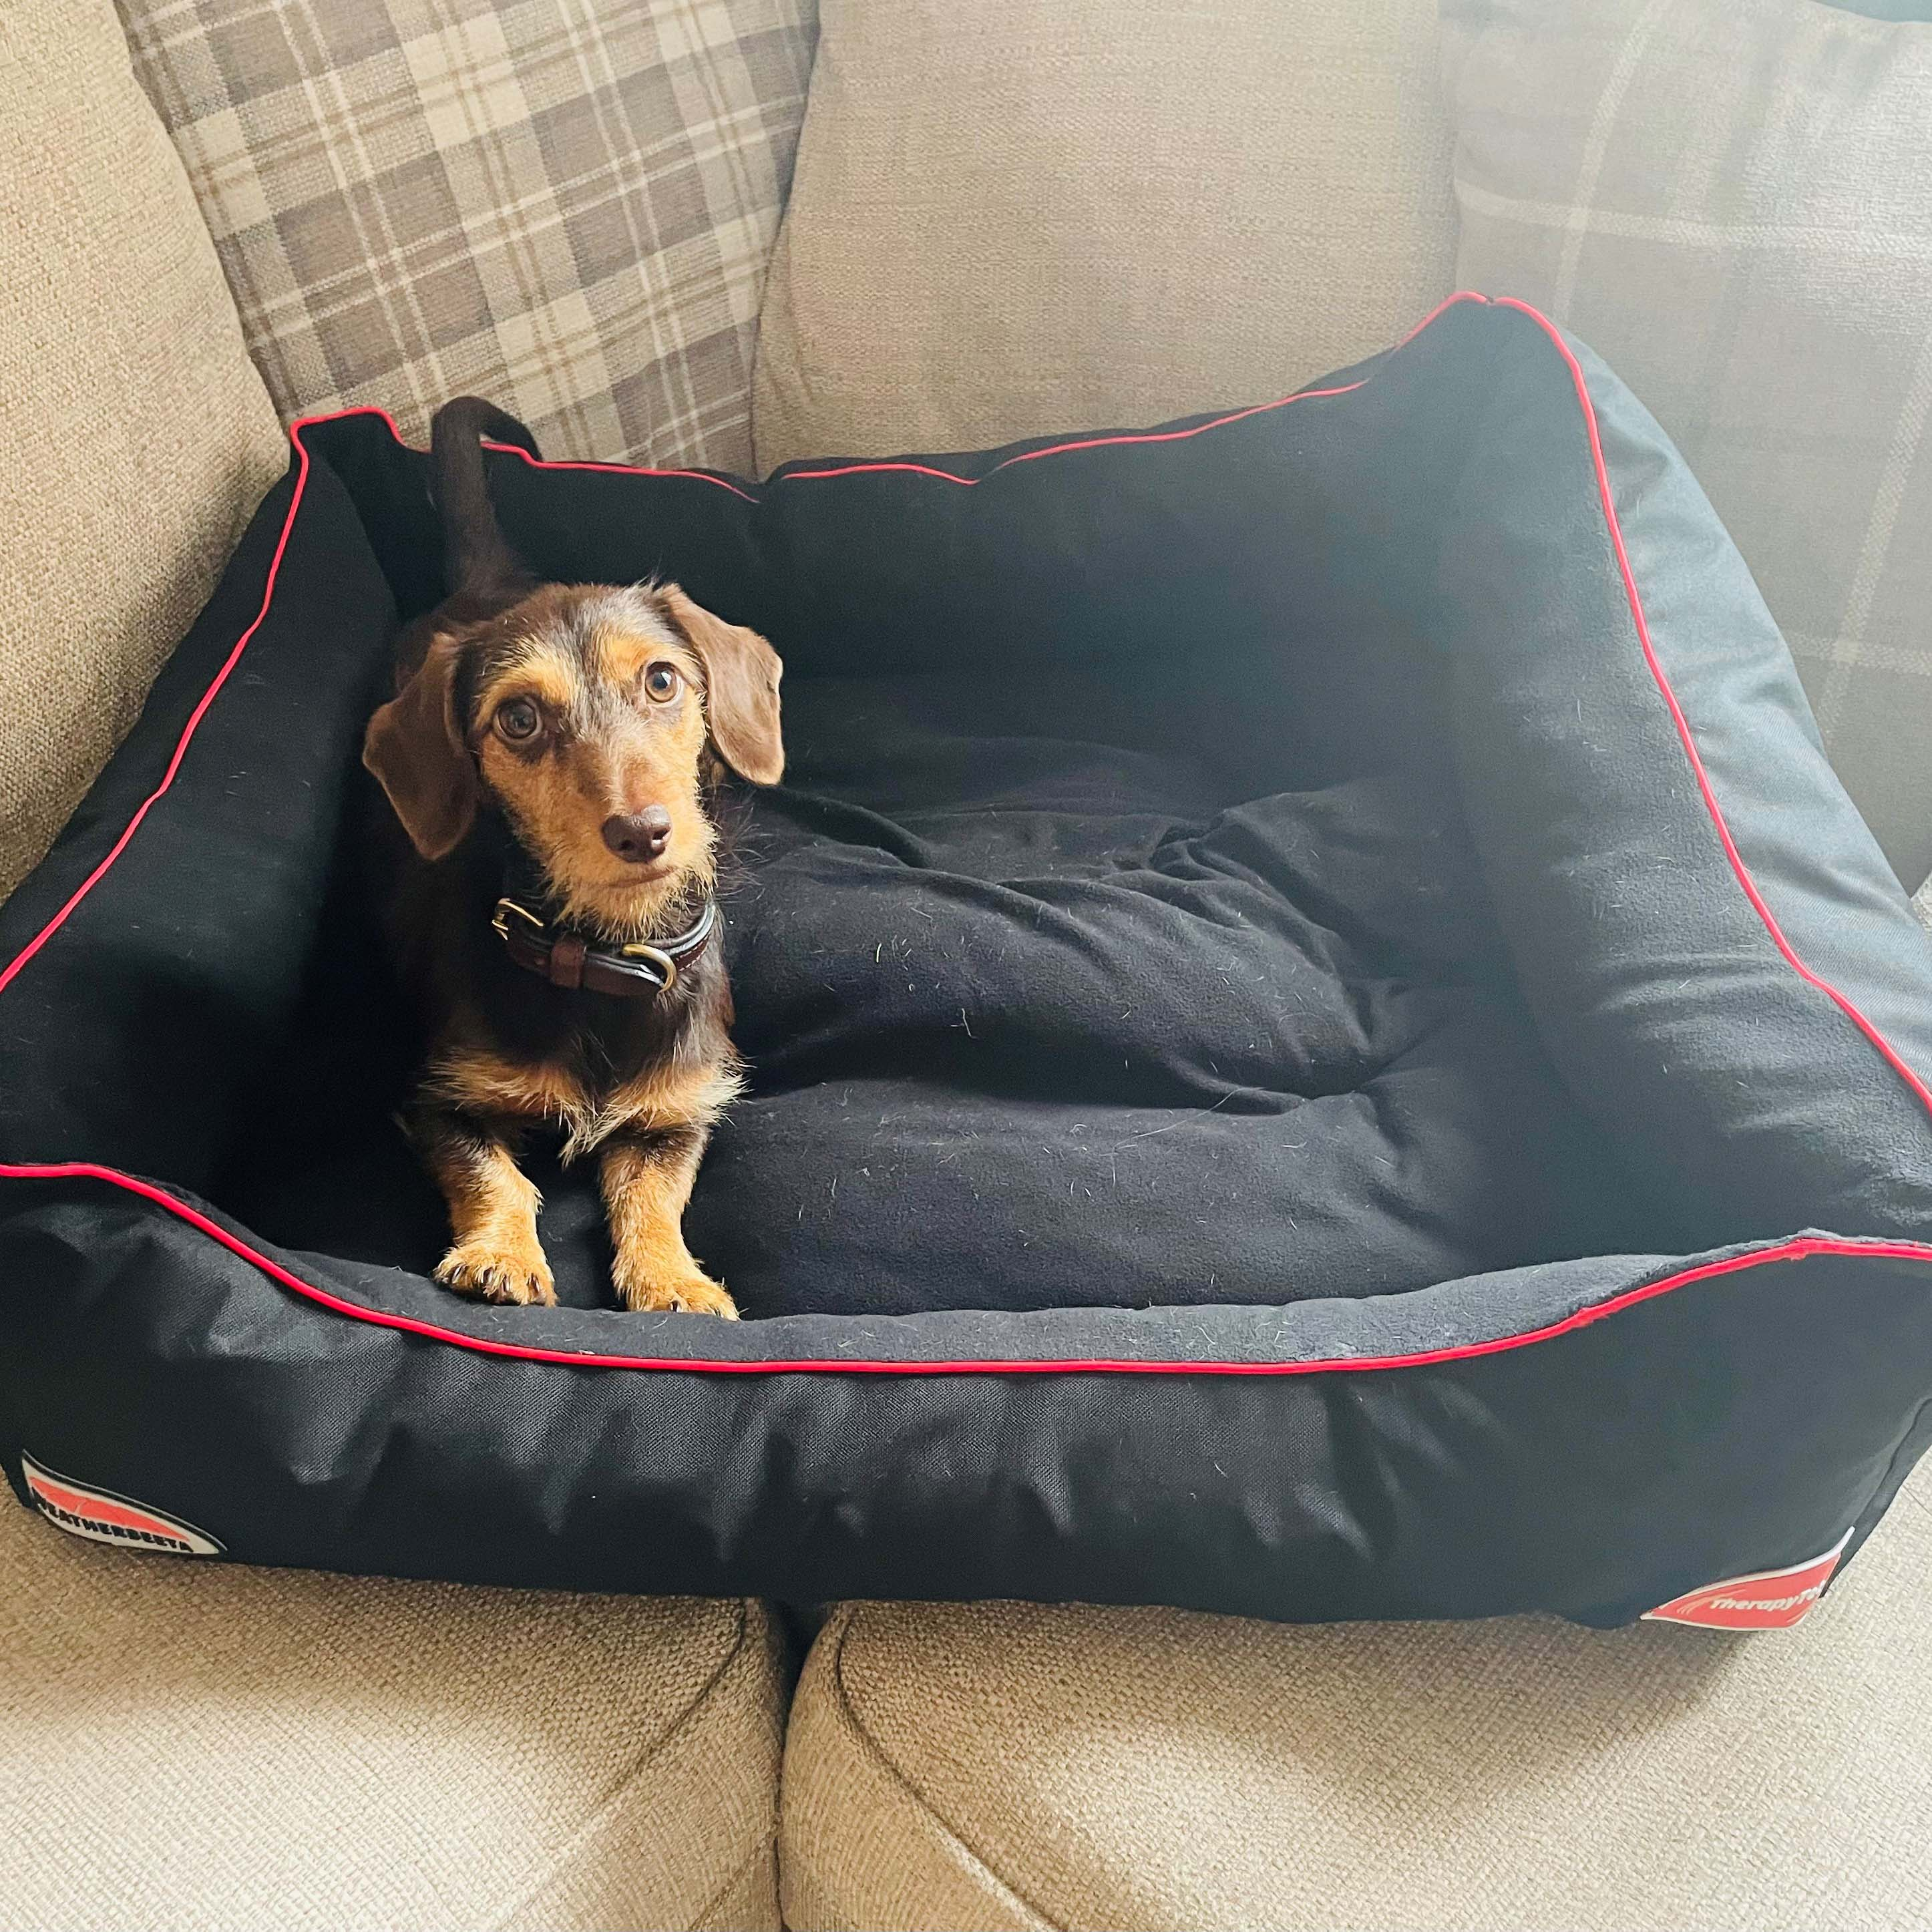 What makes the Therapy-Tec dog bed so effective?